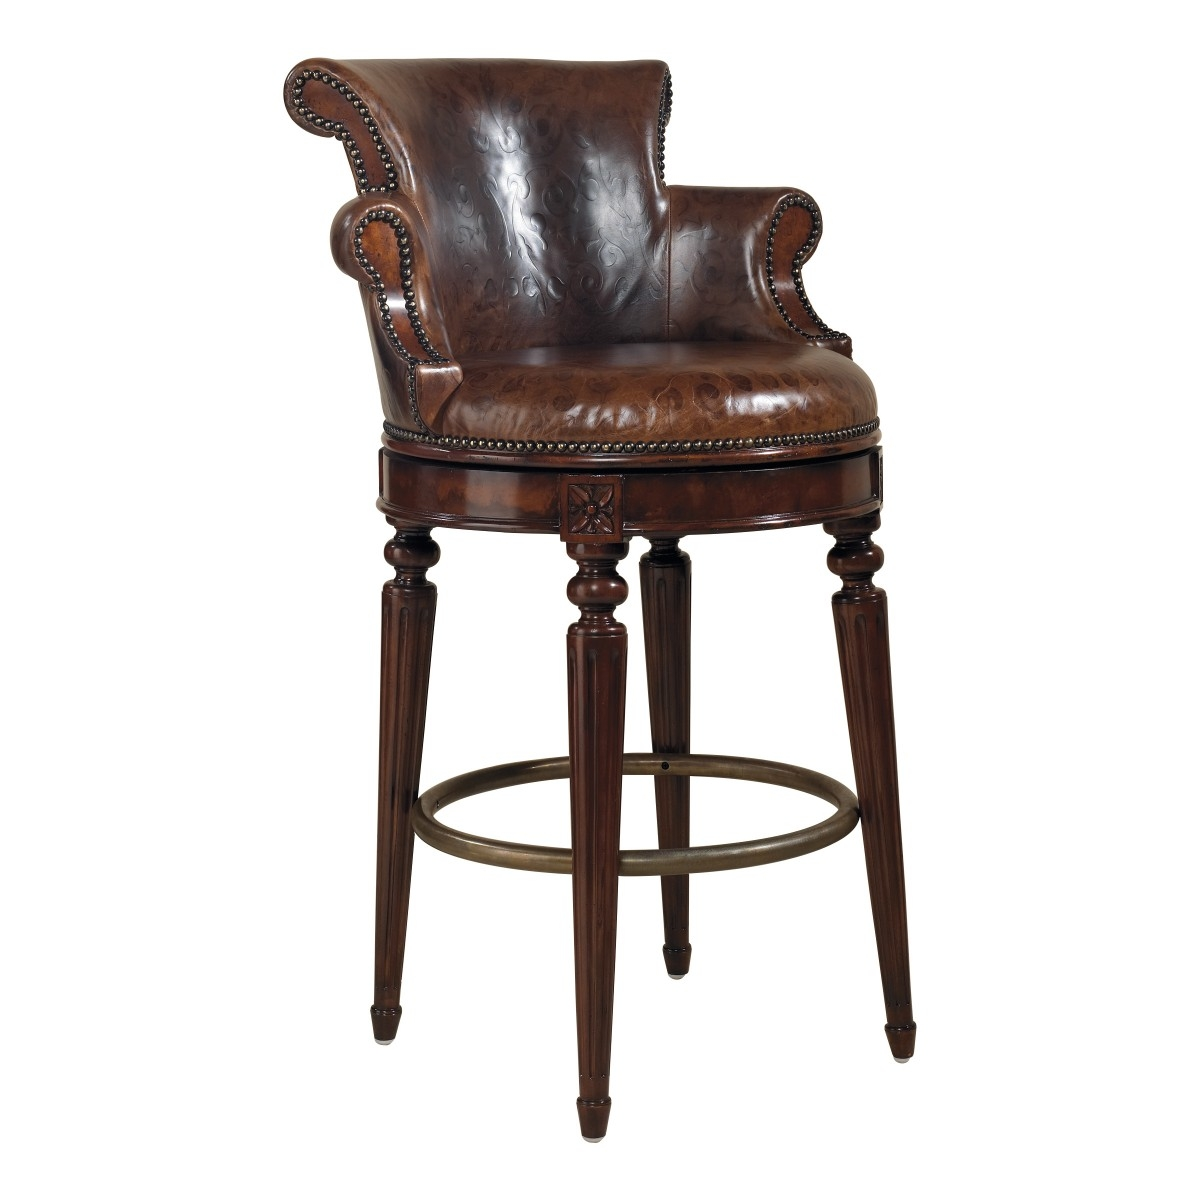 Ordinaire Leather Bar Stools With Backs